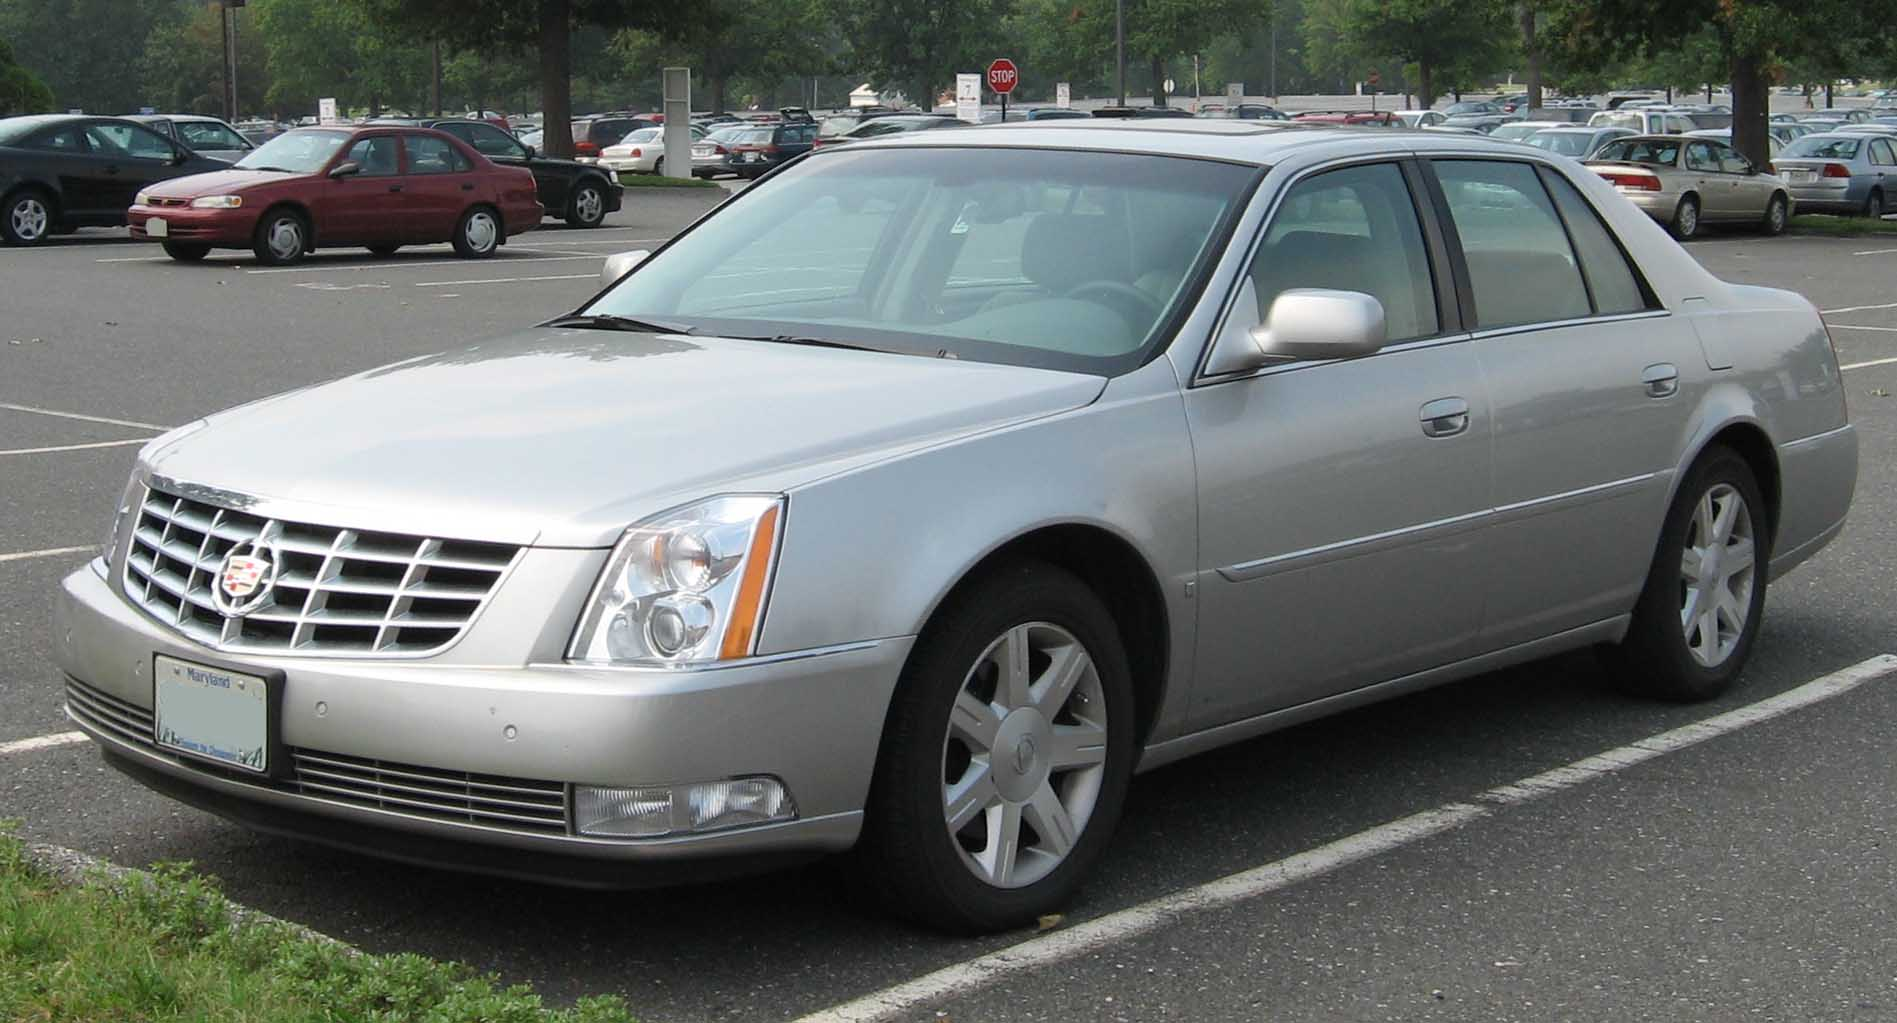 manu and value dts news cadillac research pictures sales history vehicle